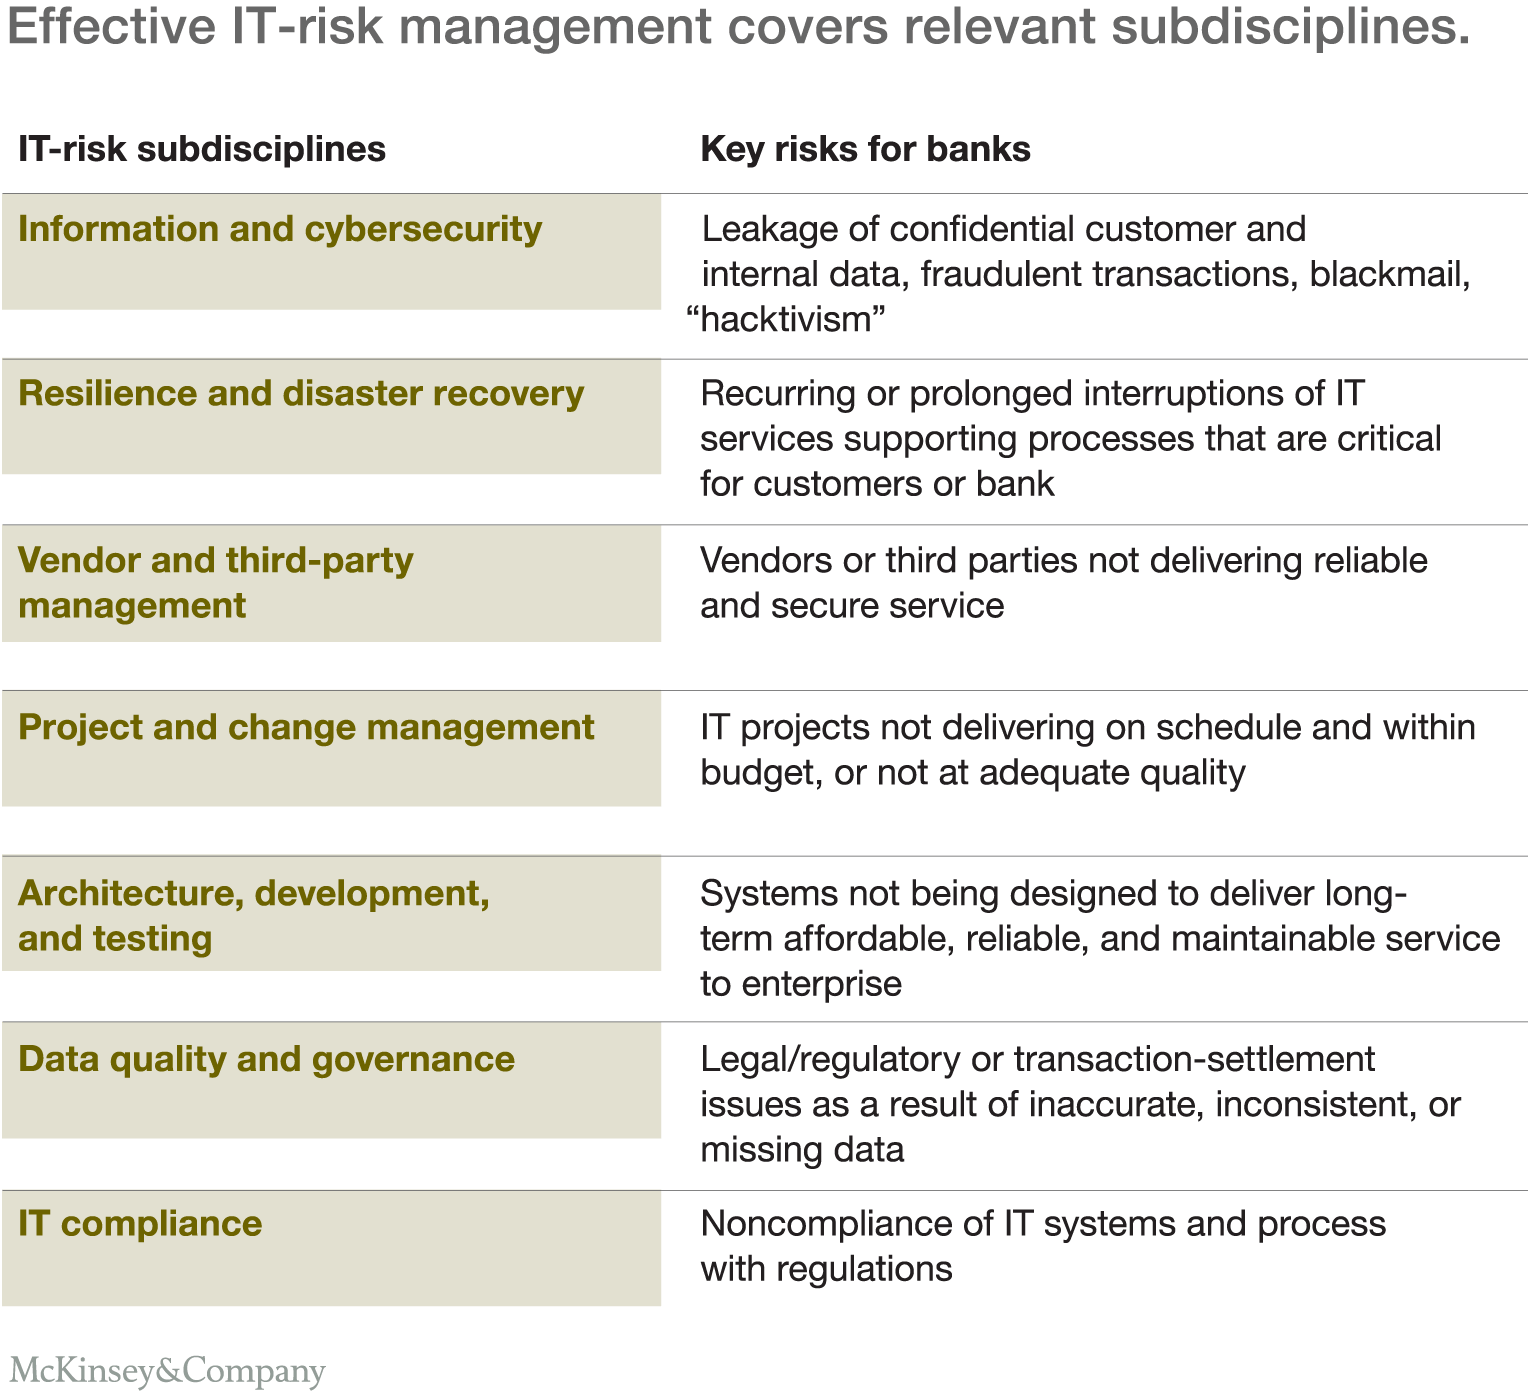 Coordinate Across The Subdisciplines Of IT Risk Management